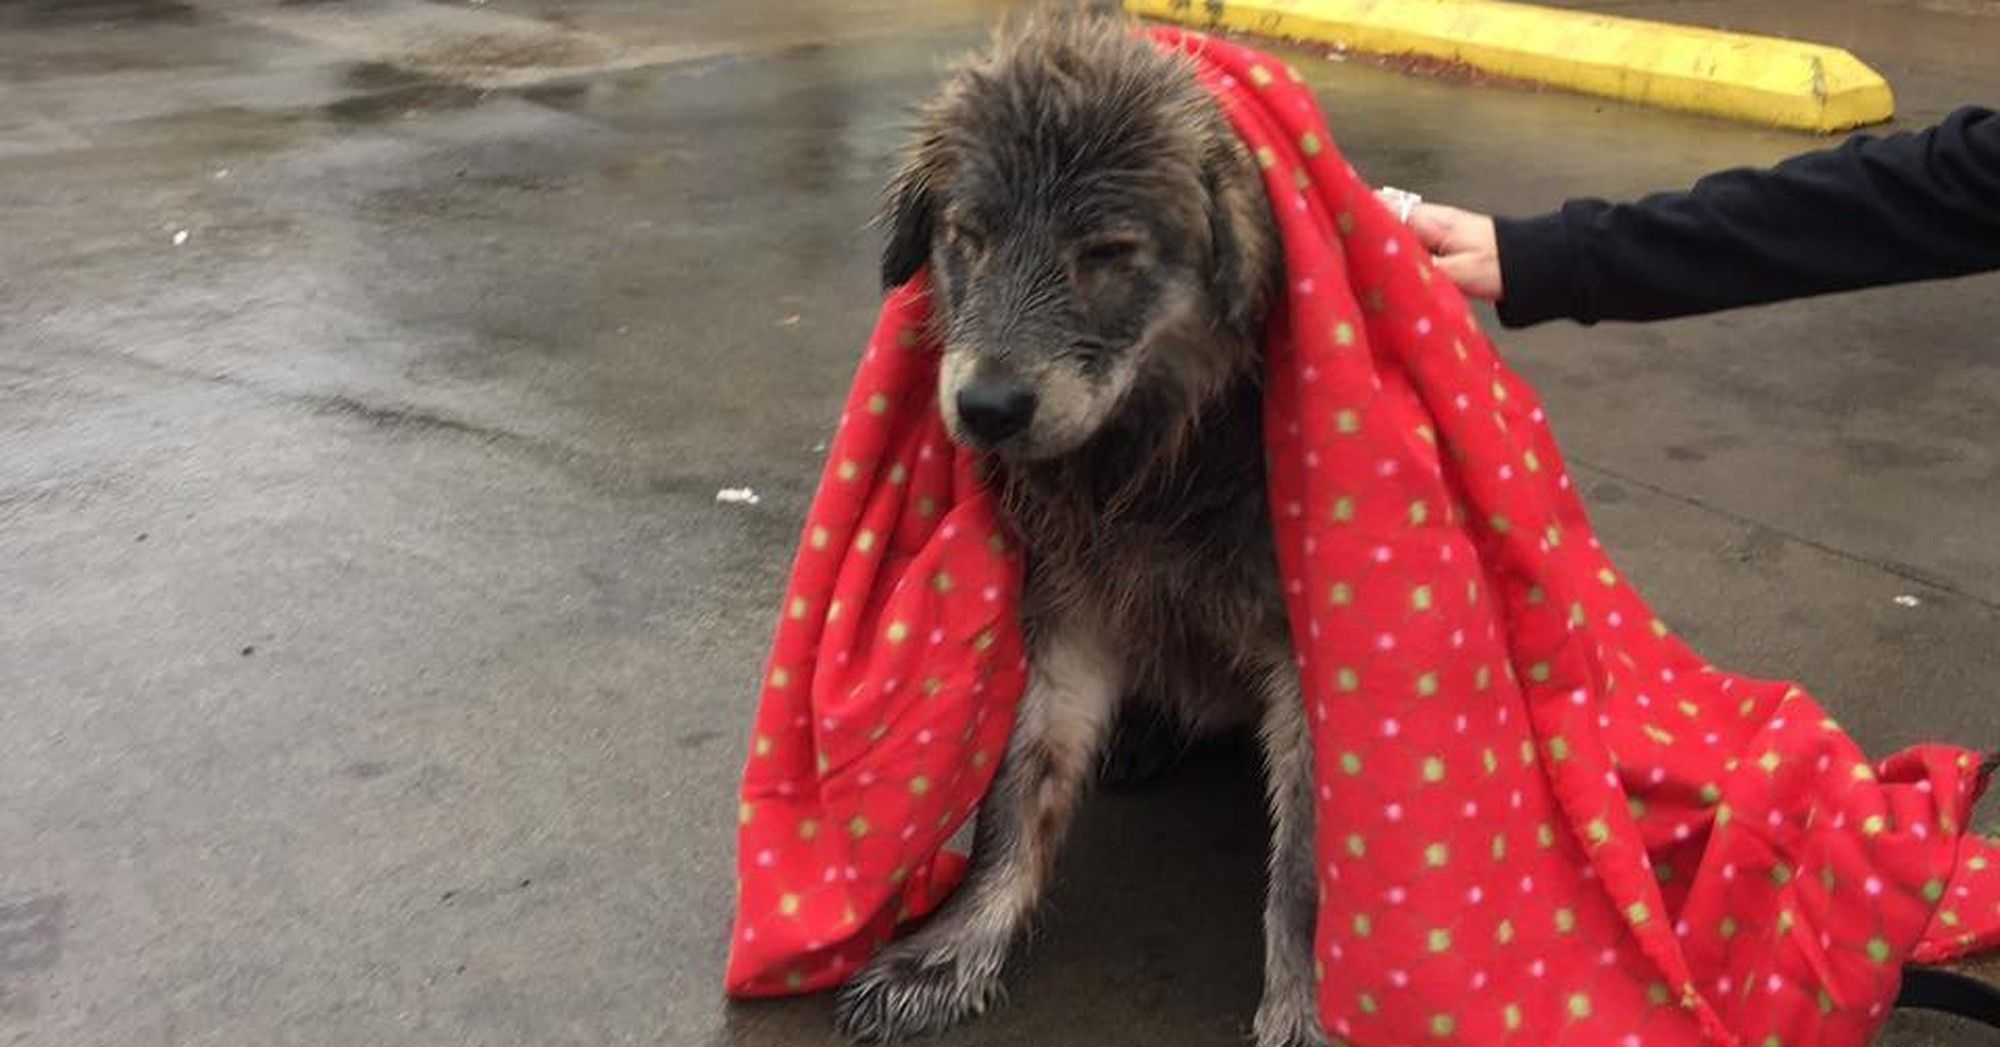 Dog Abandoned In Rain Is Too Scared To Even Move Dogs